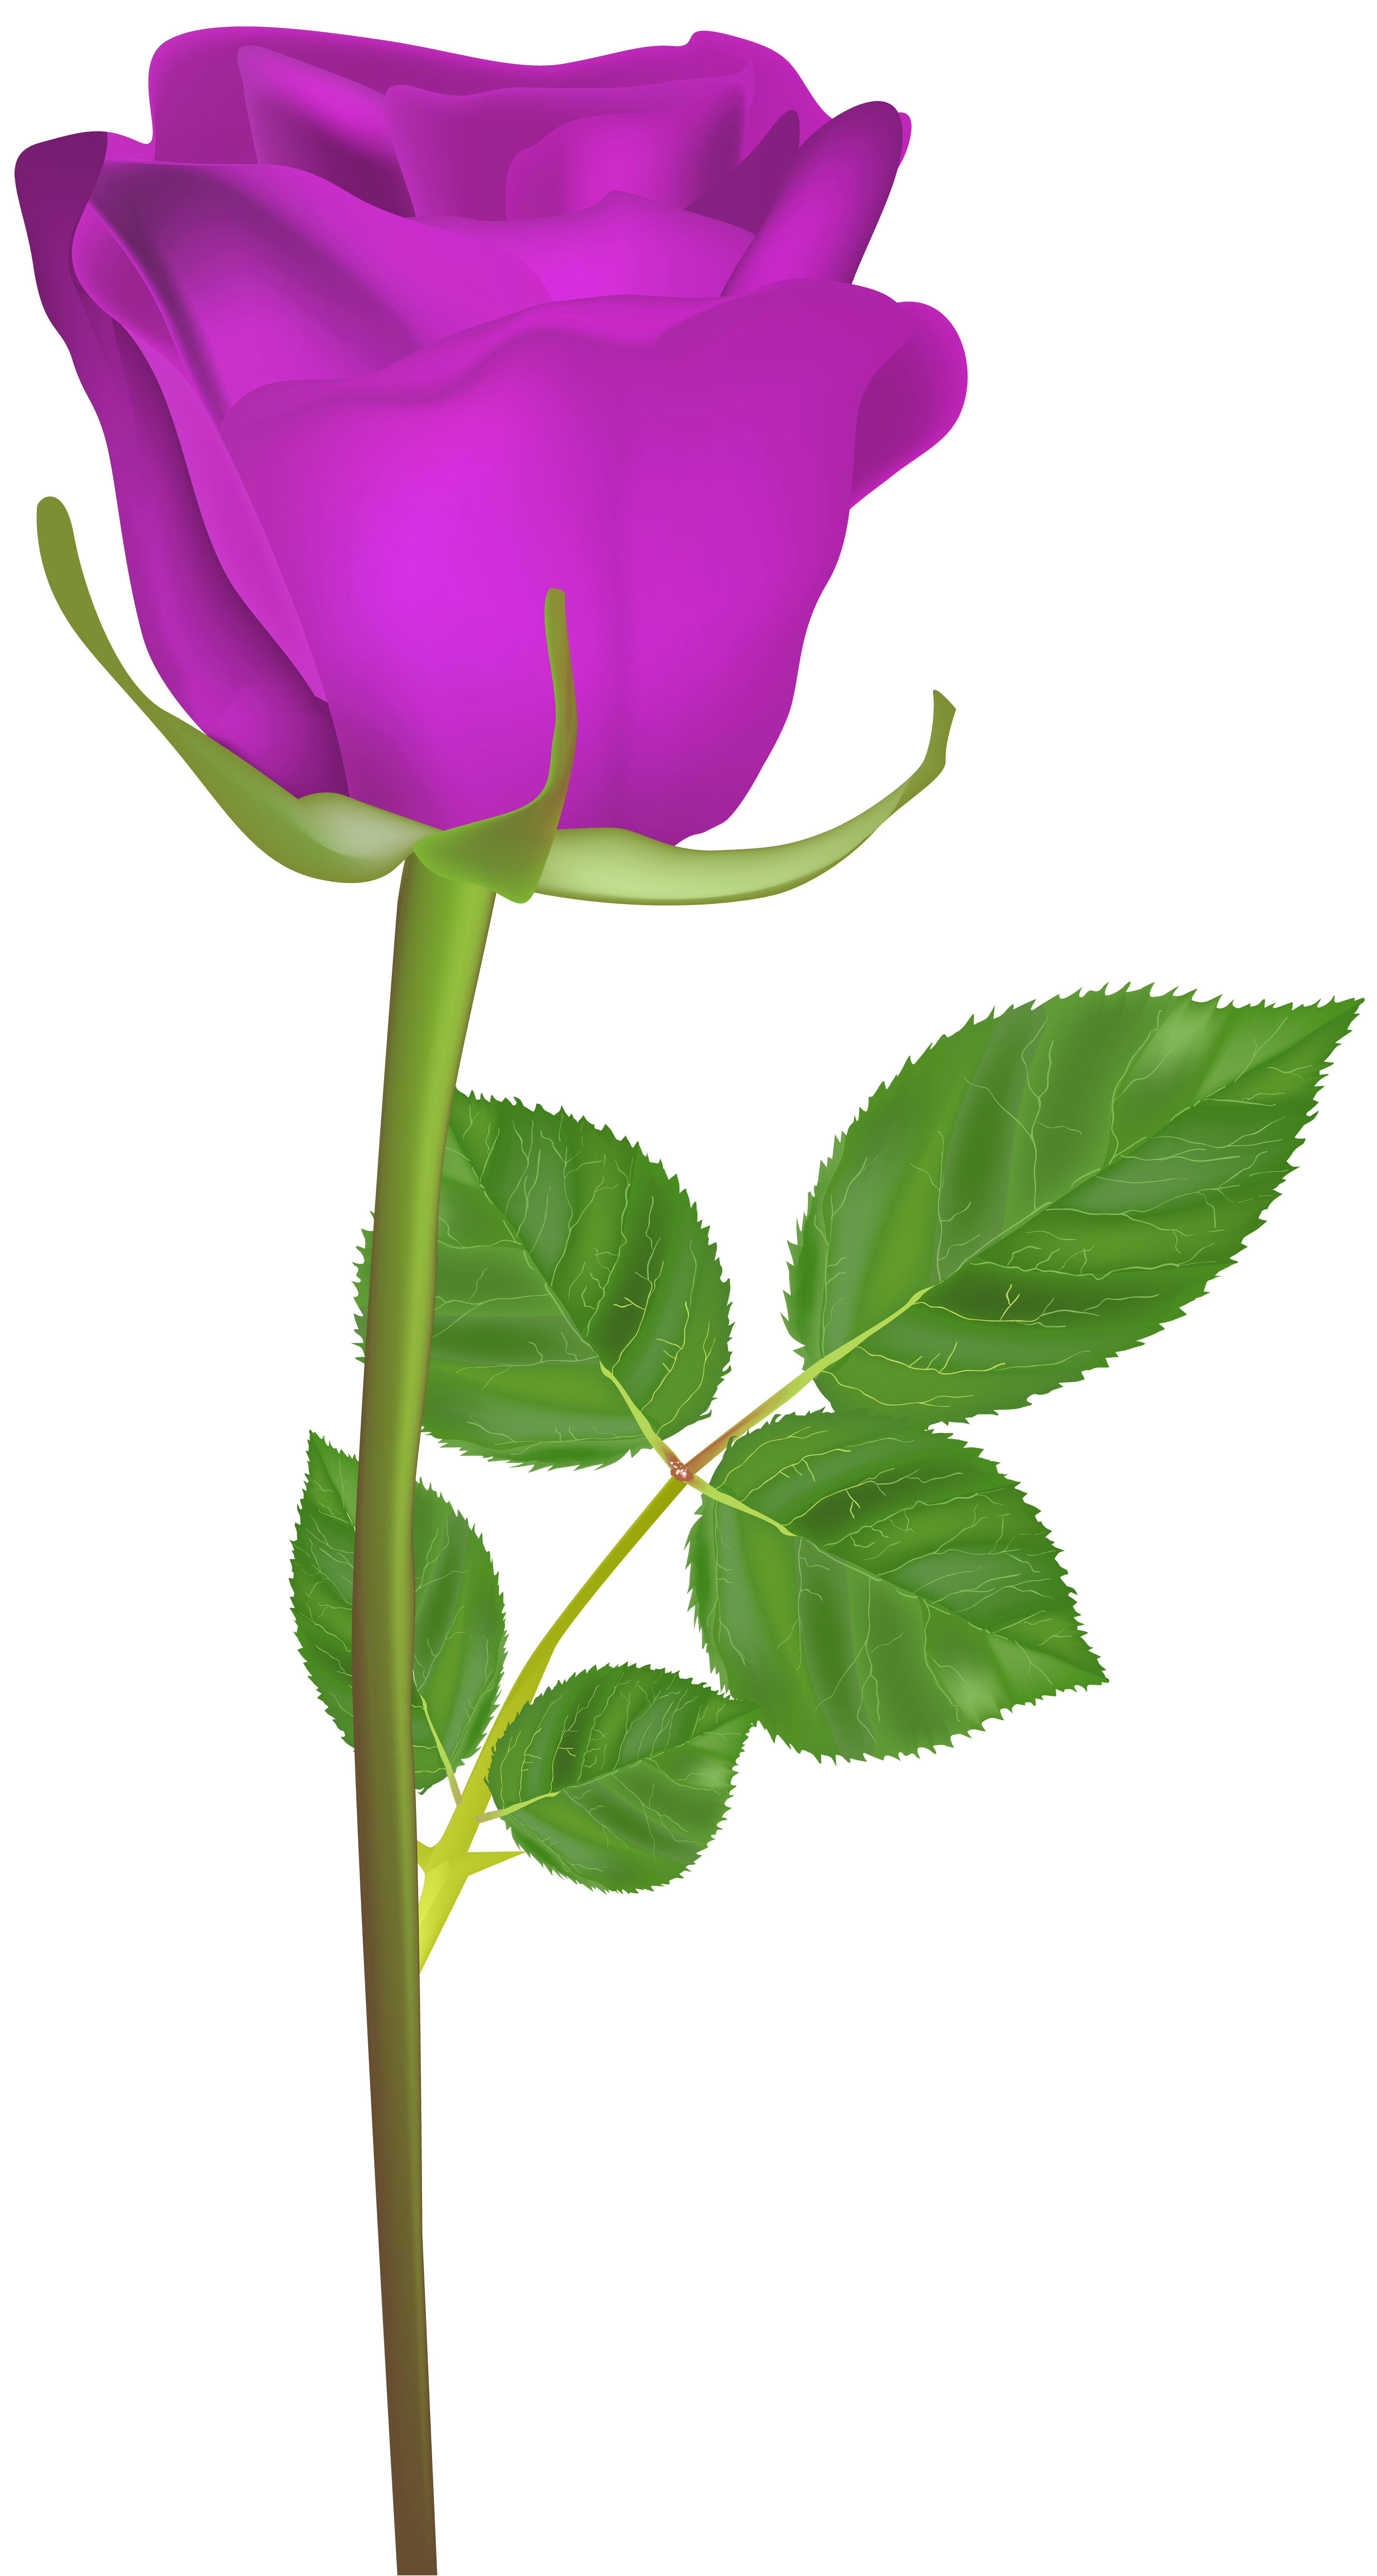 4276x8000 Rose With Stem Purple Png Clip Art Imageu200b Gallery Yopriceville